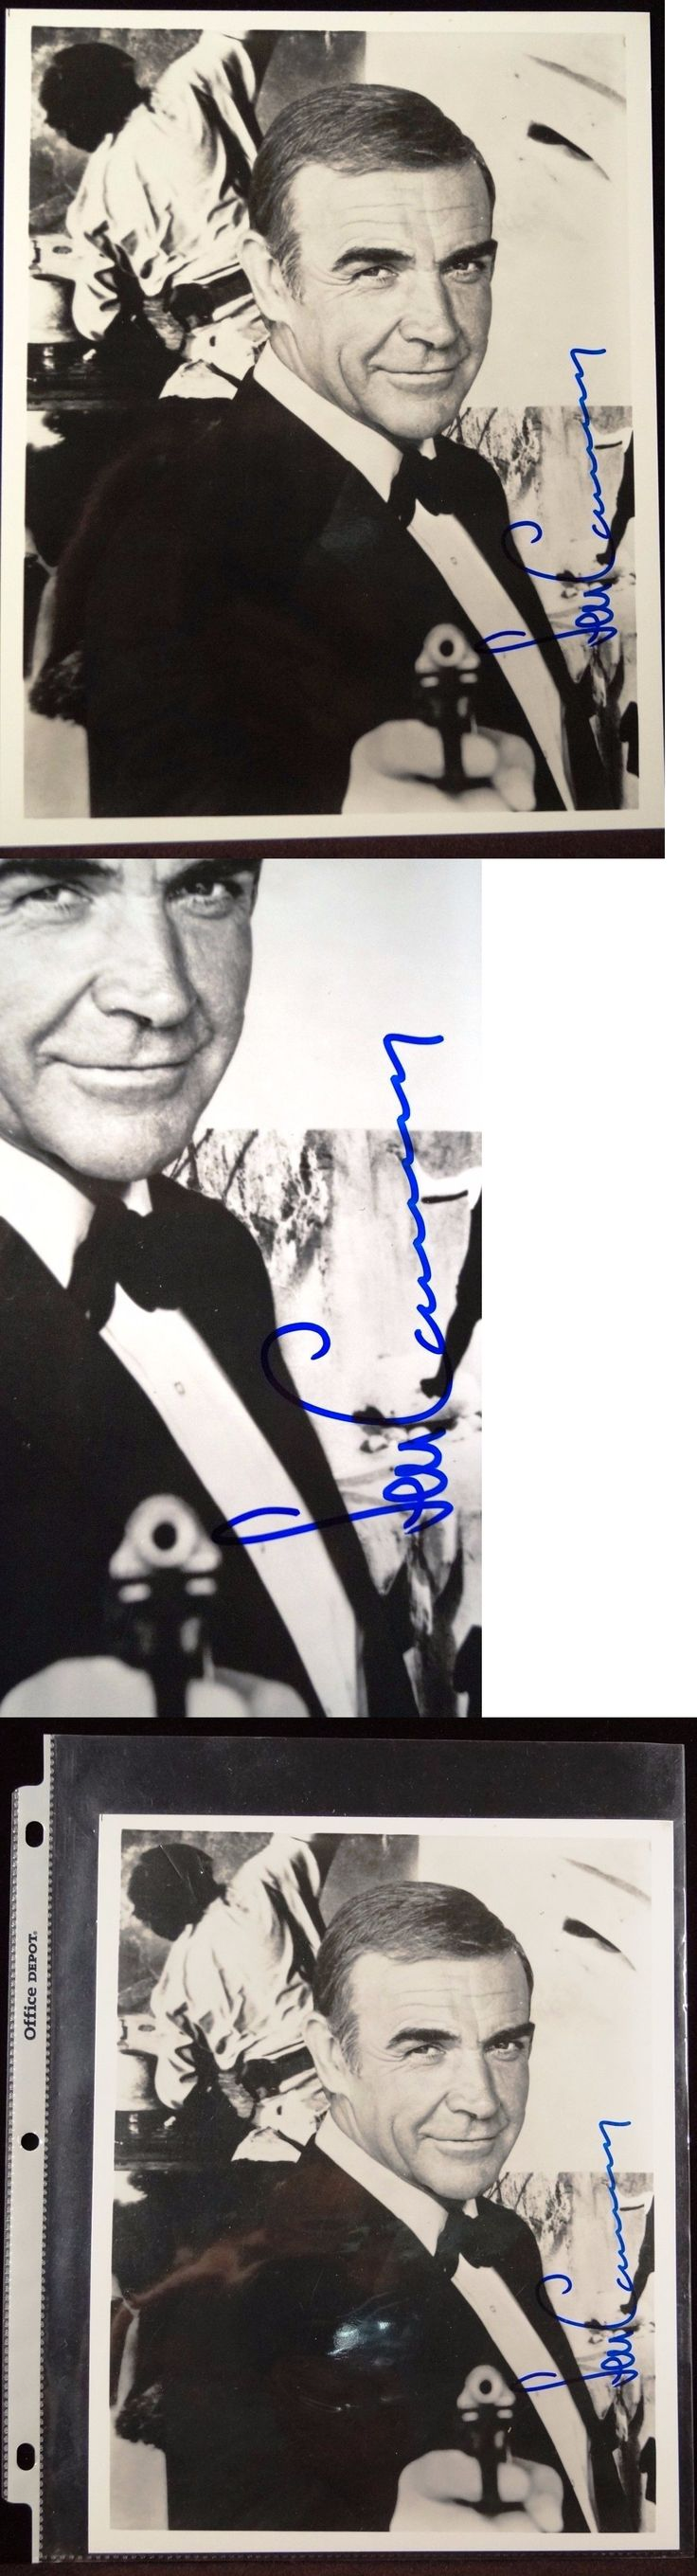 Celebrity Autographs: Sean Connery Agent 007 Autographed Signed 8 X 10 Photo Guaranteed Authentic ! -> BUY IT NOW ONLY: $9.99 on eBay!